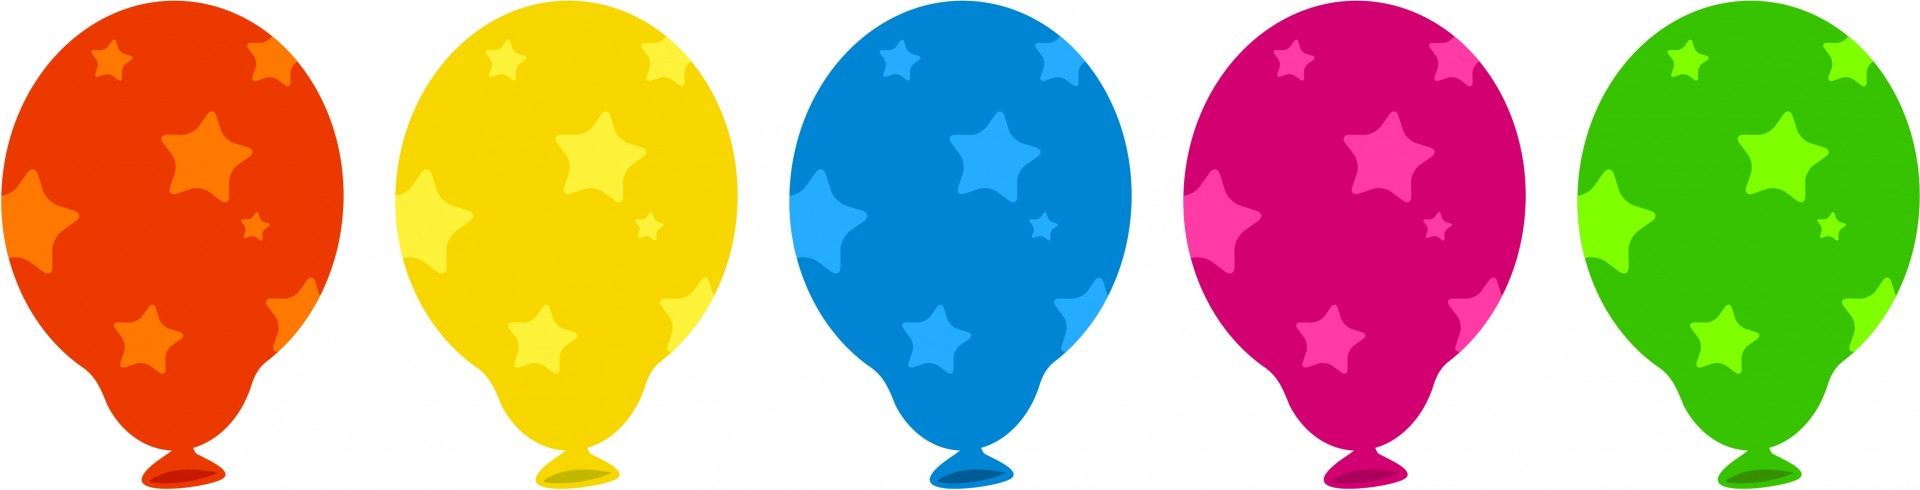 1920x490 Colourful Balloons Clip Art Free Stock Photo